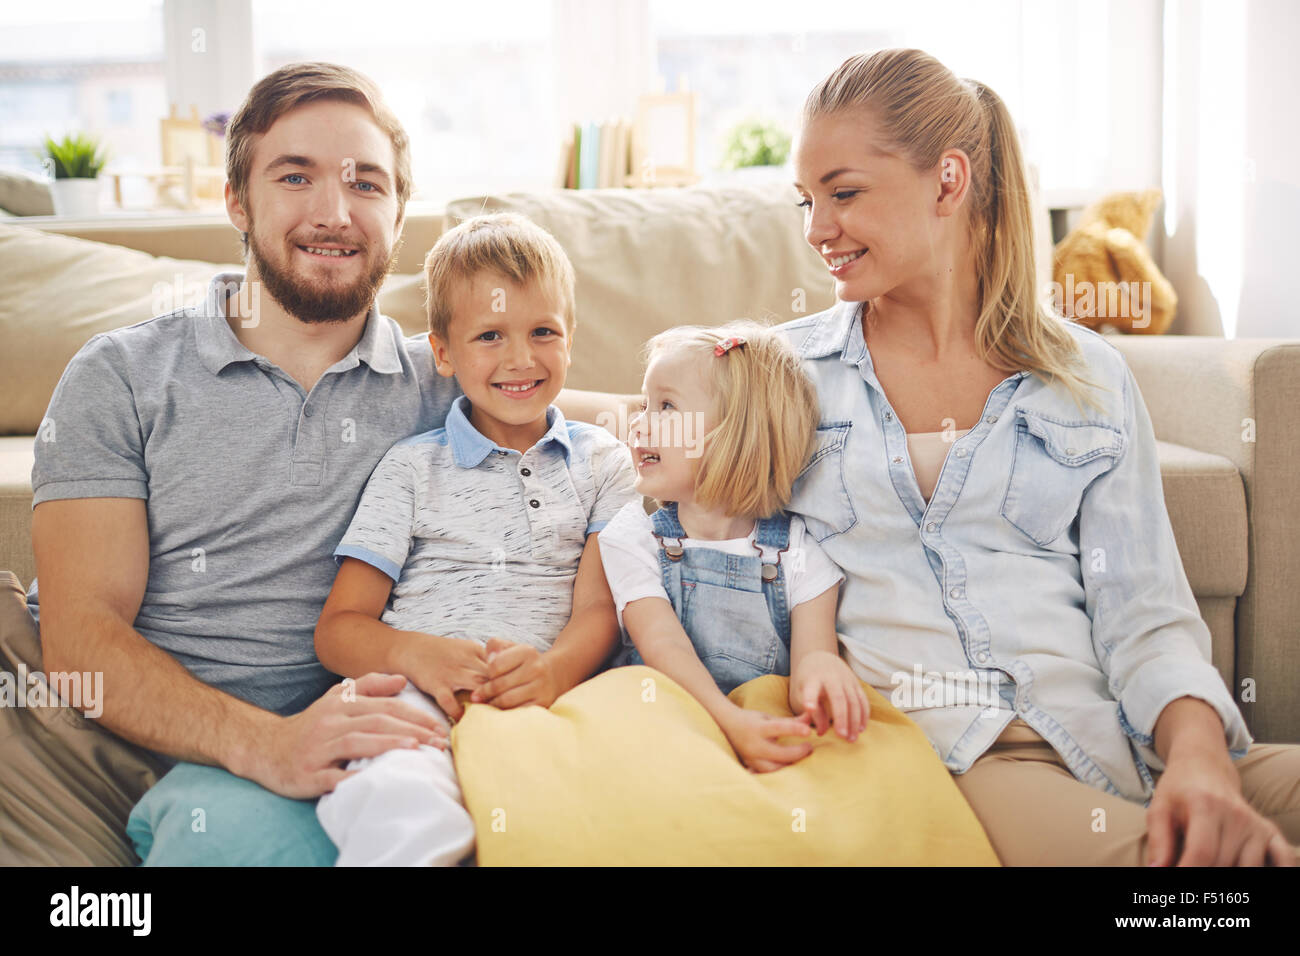 Happy family in casualwear sitting on sofa at home - Stock Image